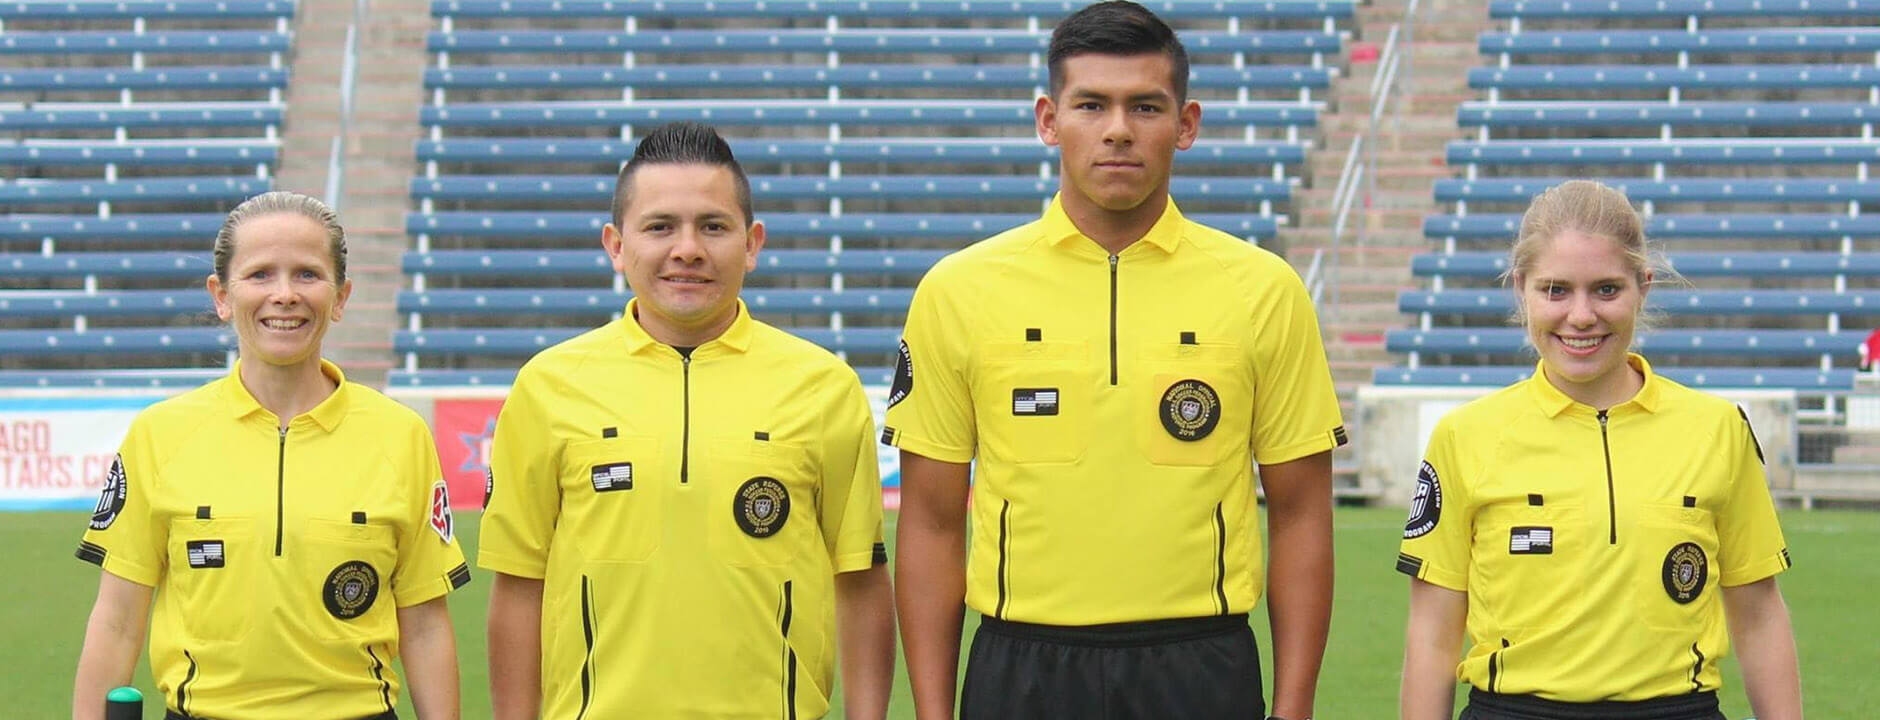 New OSI Jerseys for US Soccer Referees